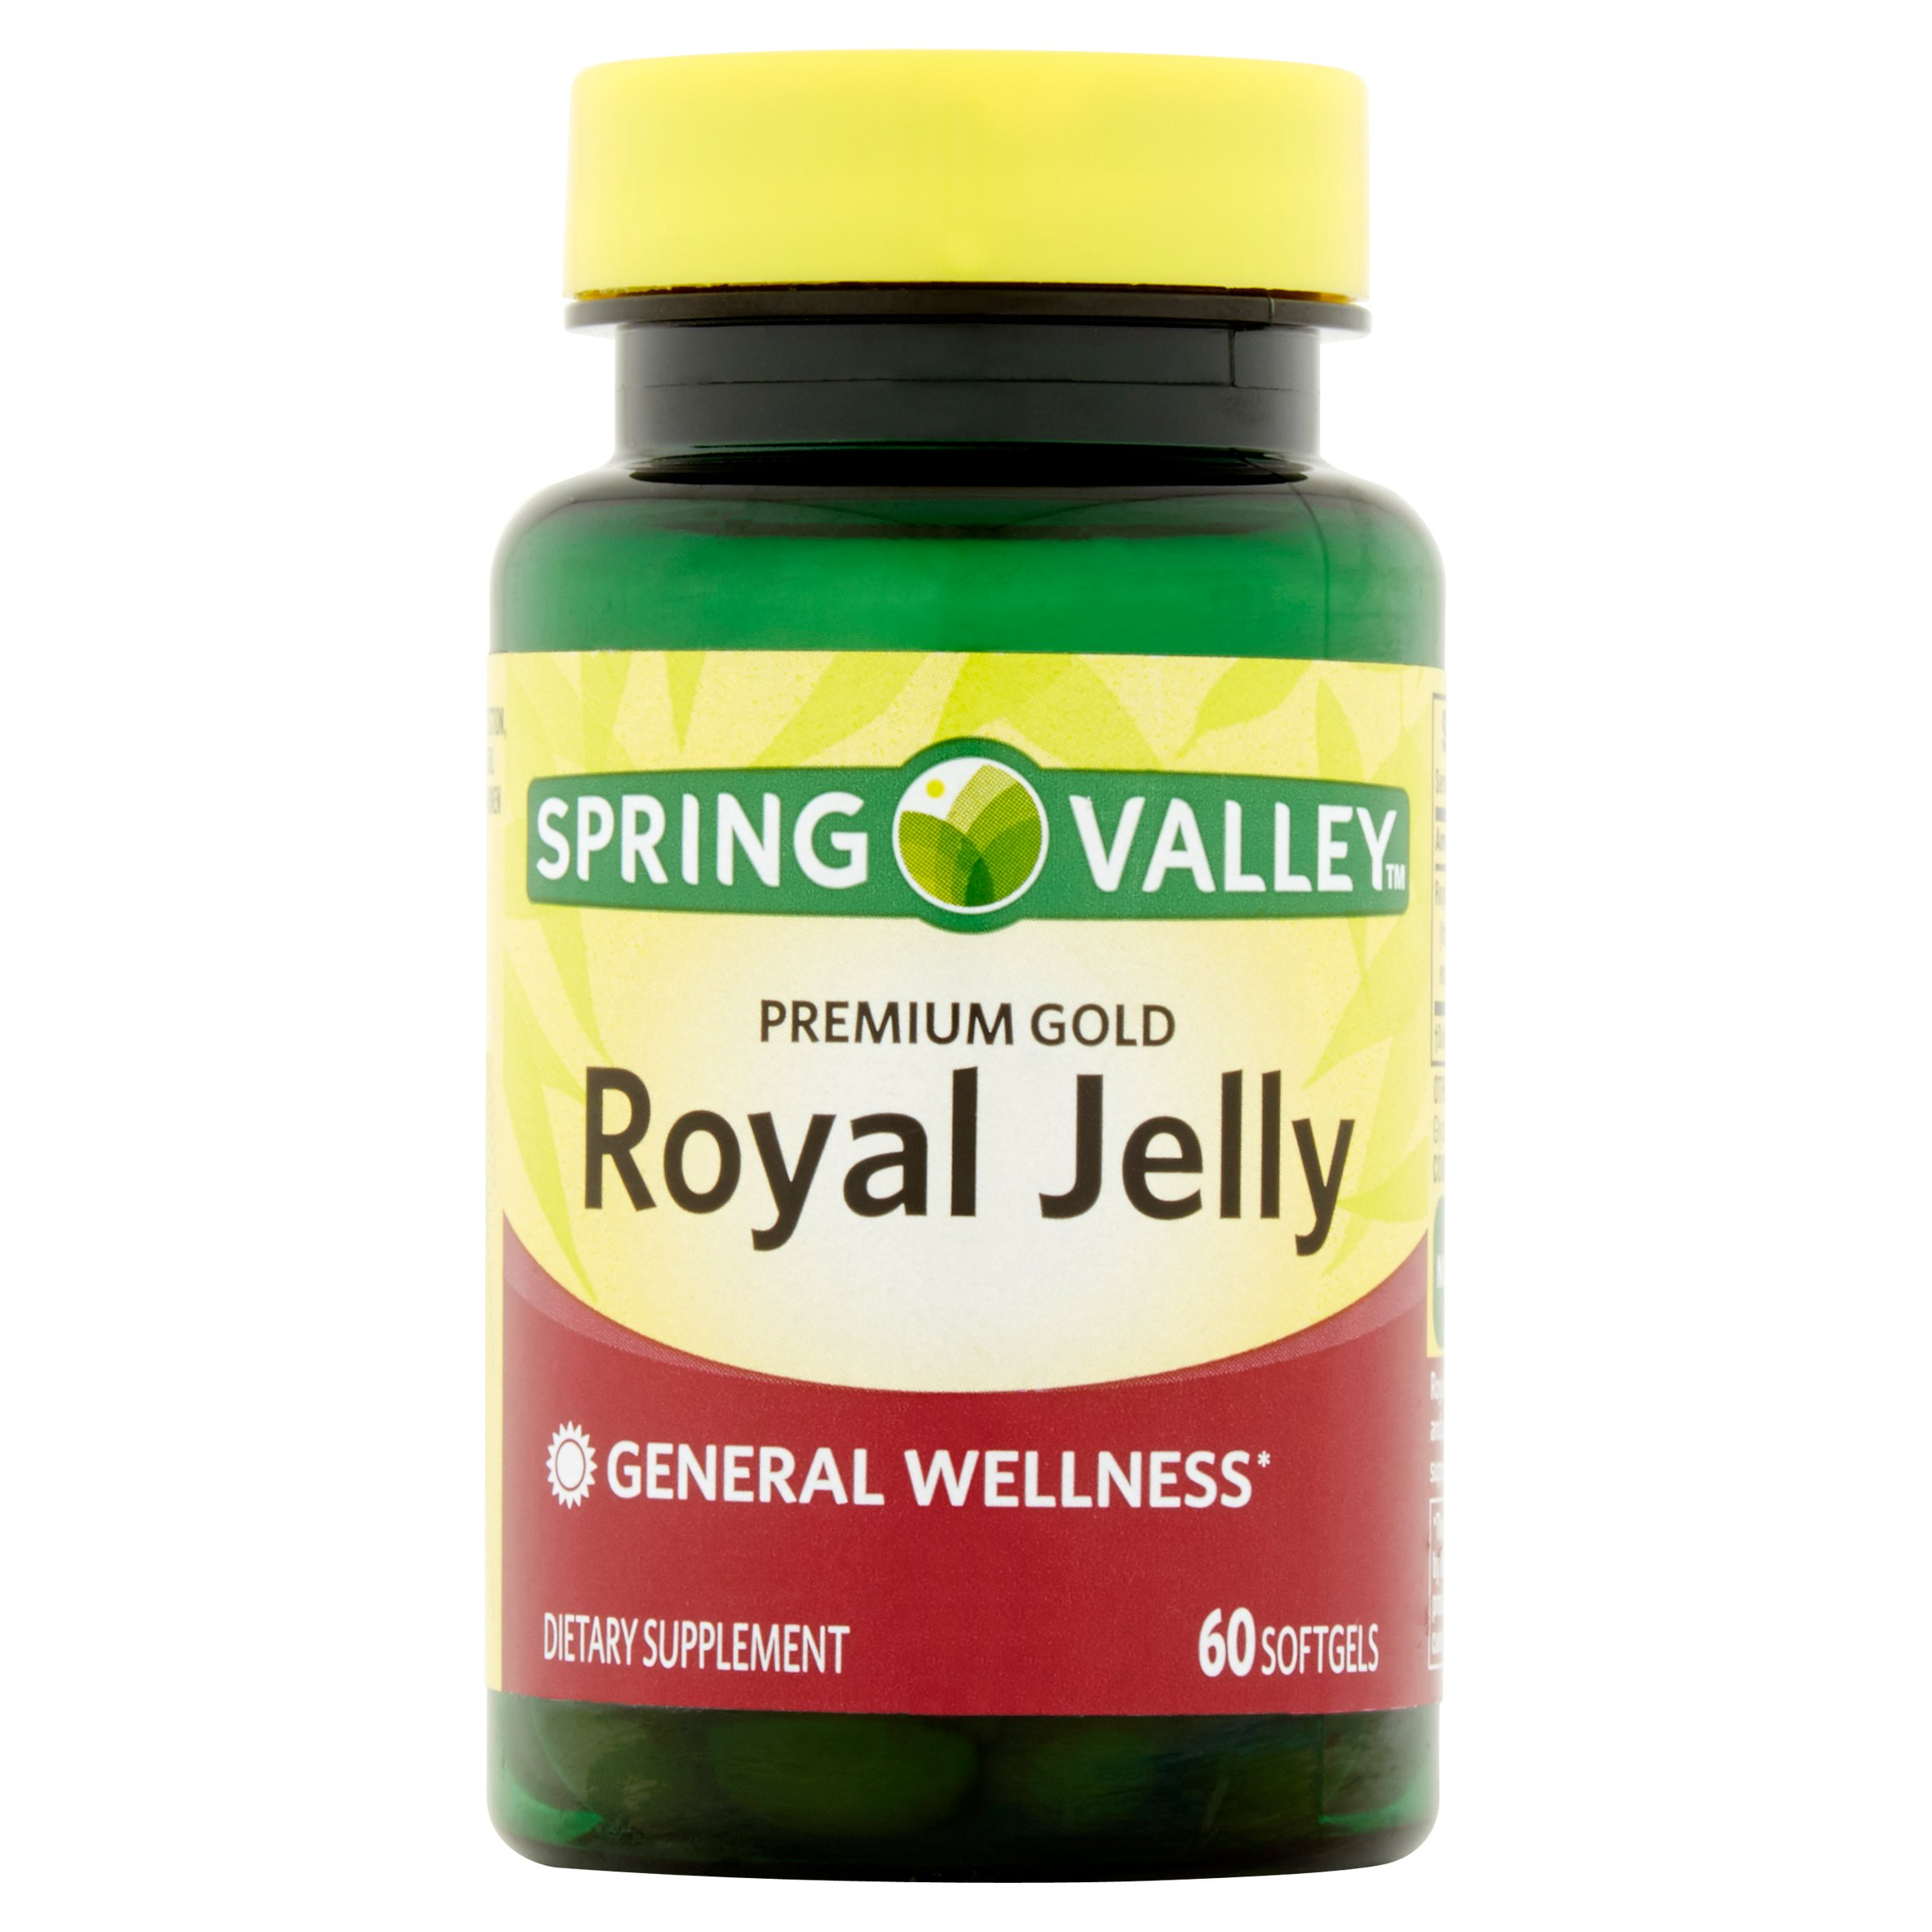 Spring Valley Premium Gold Royal Jelly Softgels, 60 ct